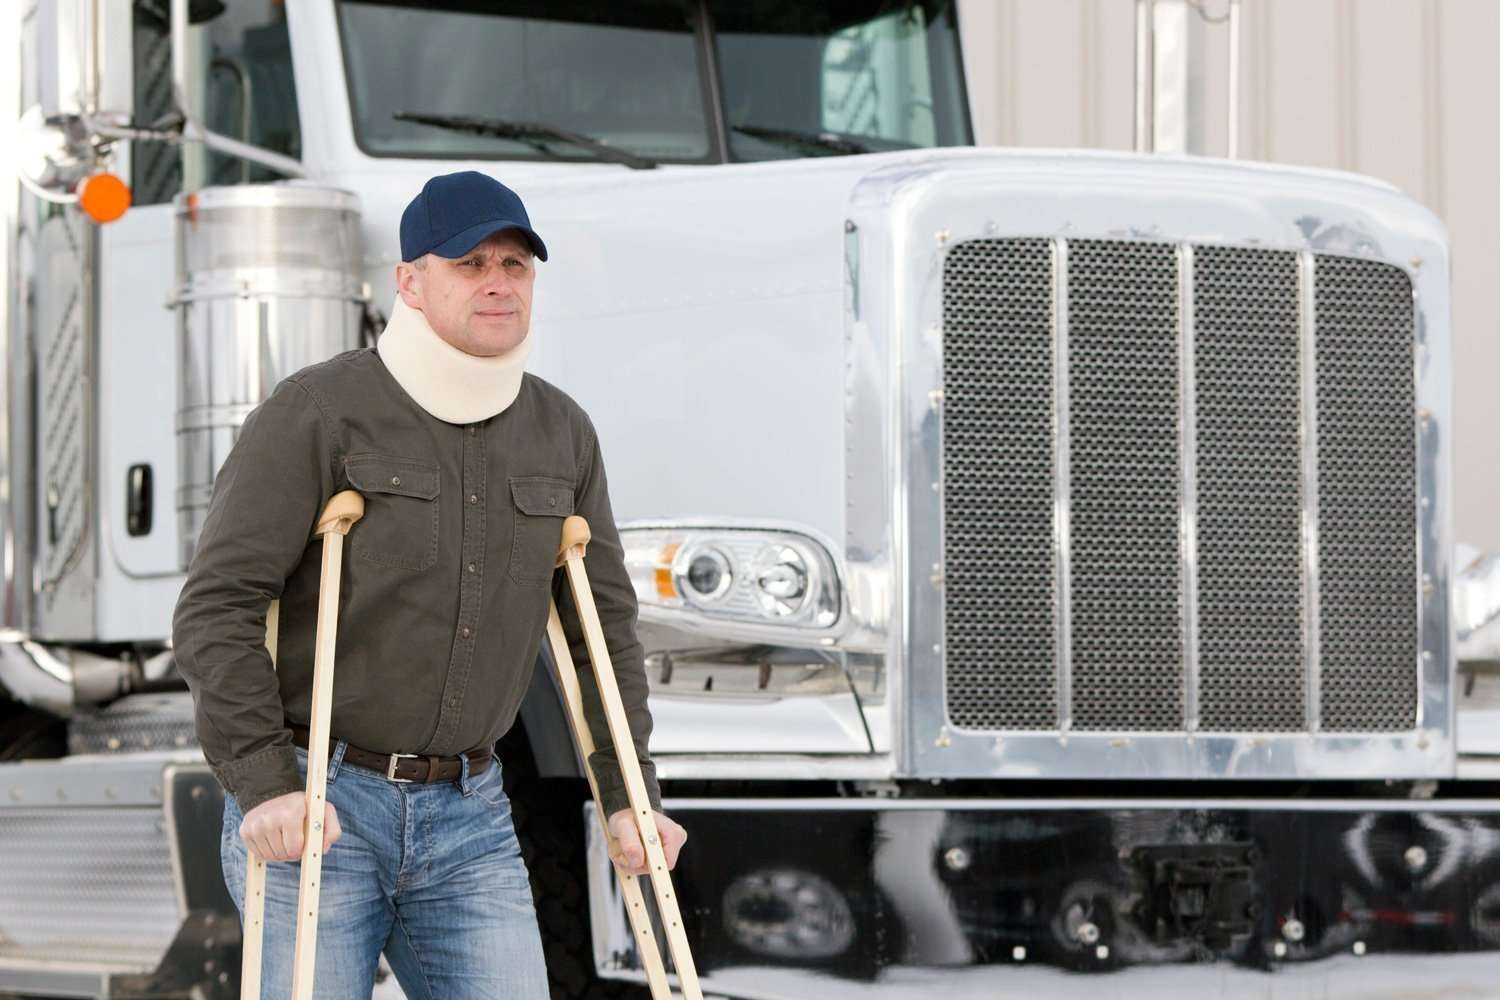 A minor standing next to his truck on crutches with whiplash